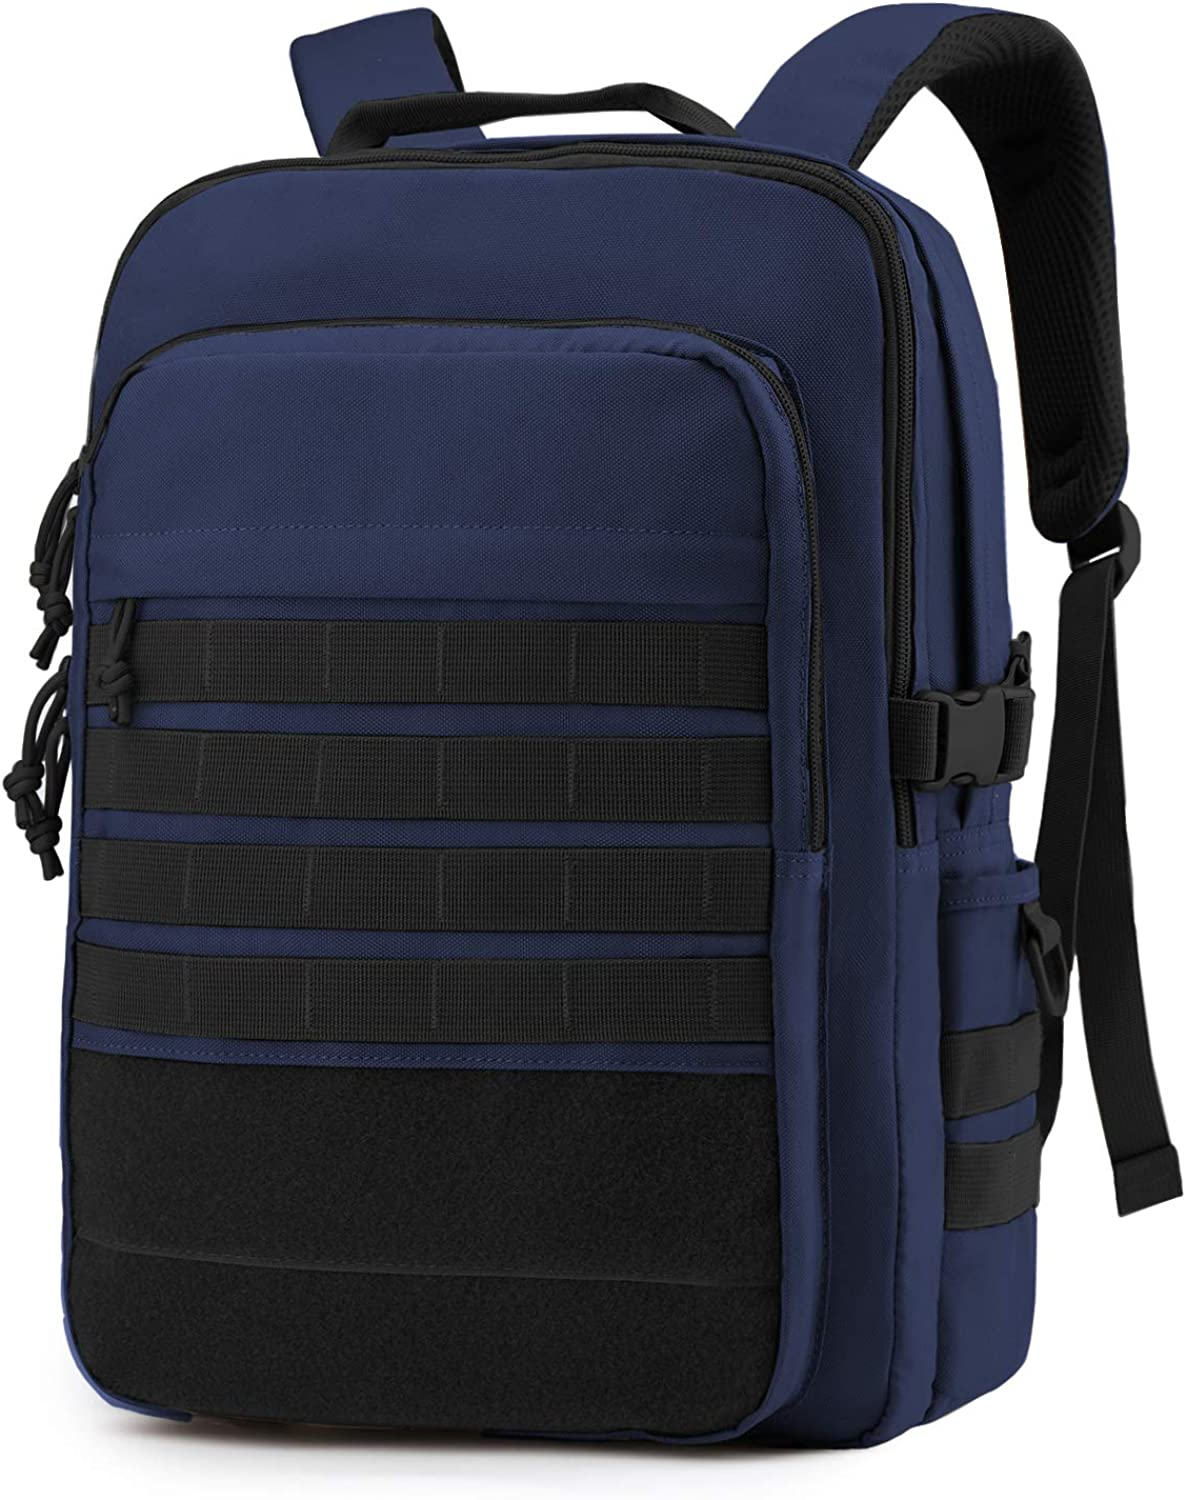 Wind Took Laptop Backpack for Women and Men Travel School College Daypack